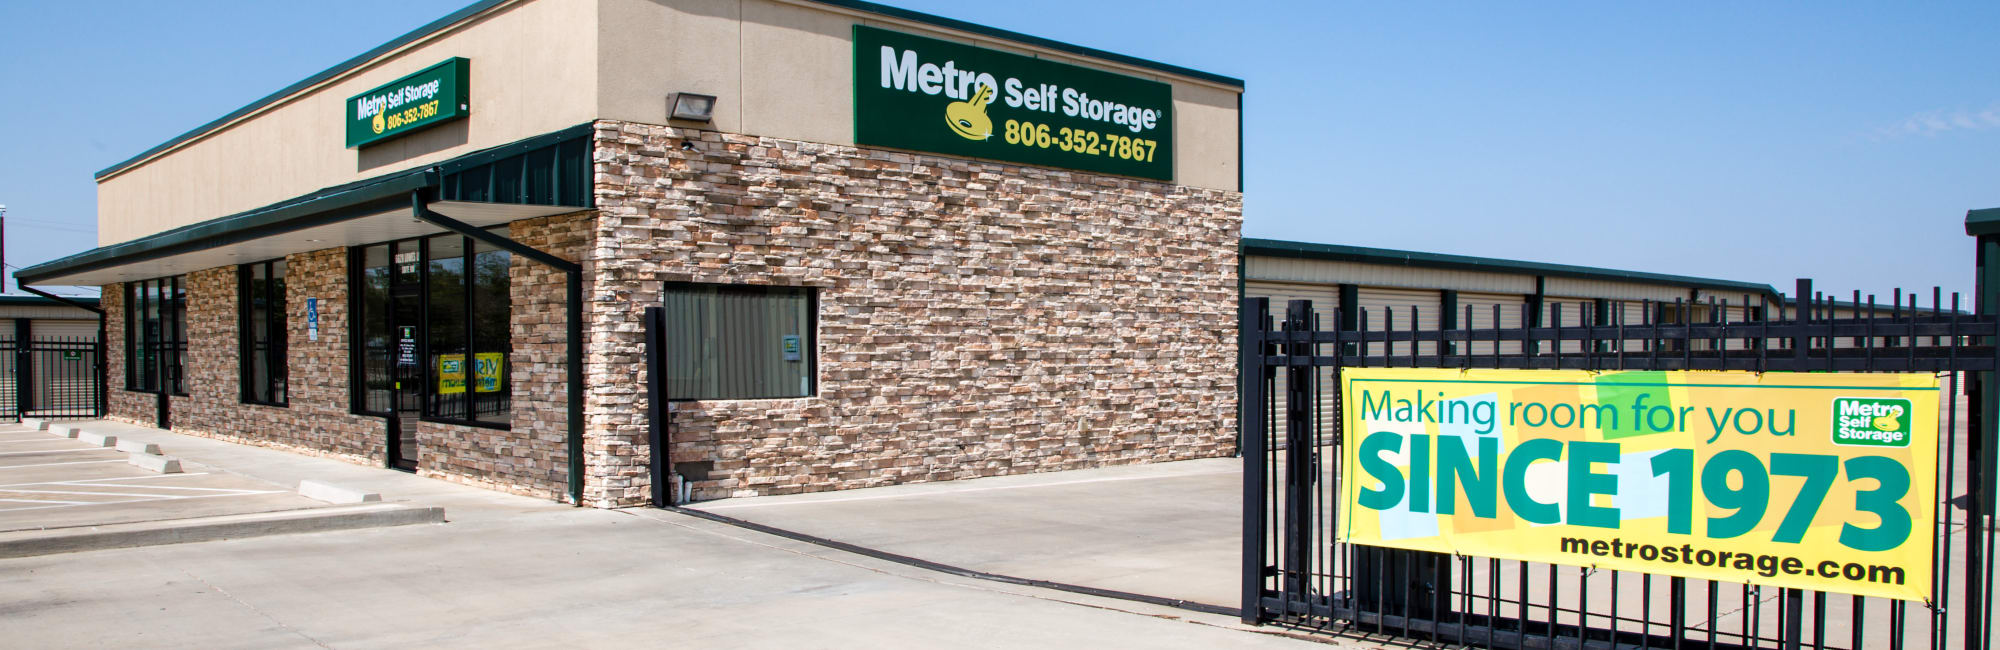 Metro Self Storage in Amarillo, TX